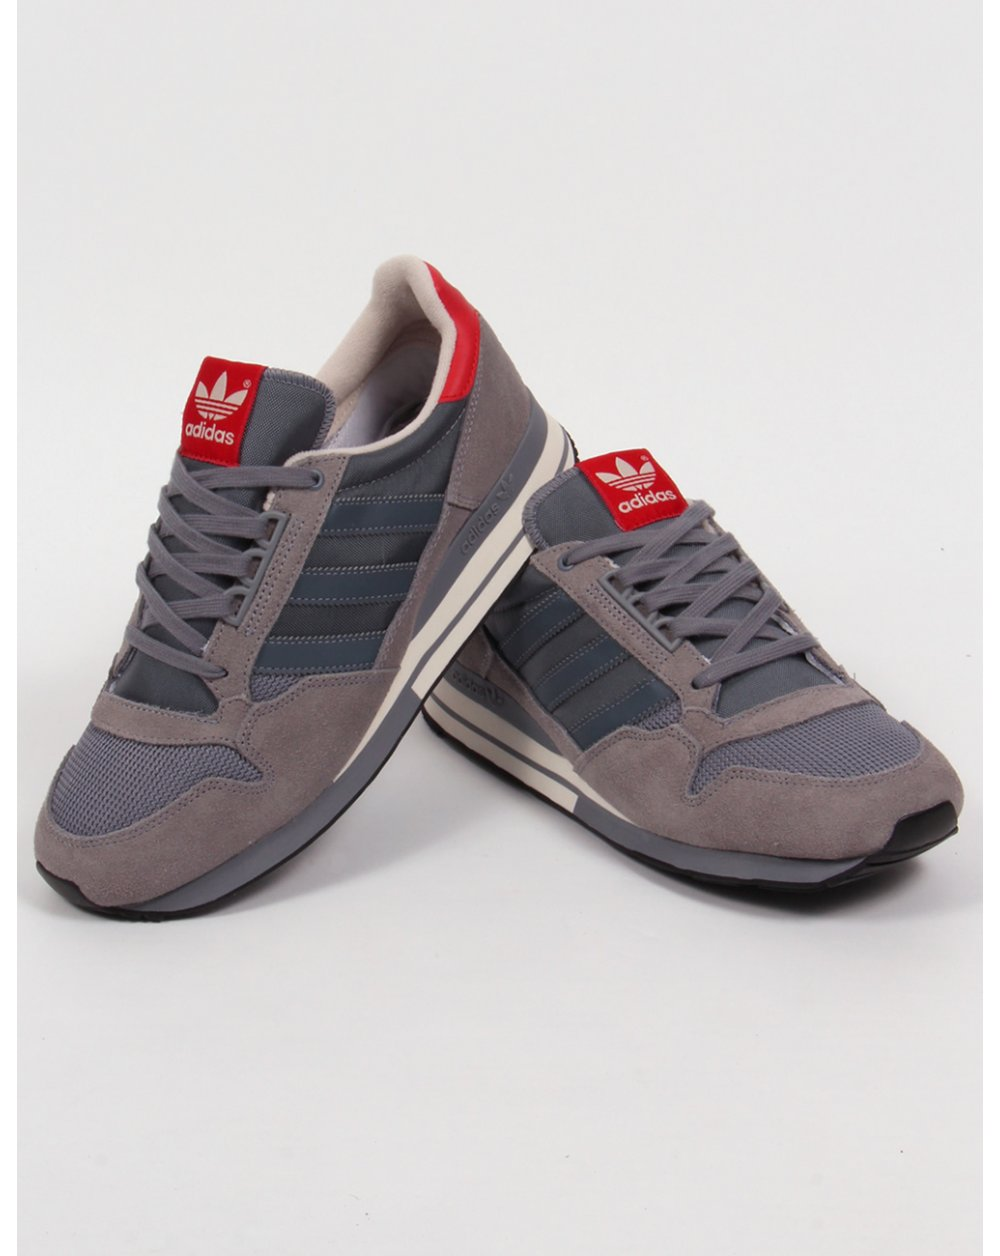 Adidas Zx 500 Og Trainers Grey/onix/red,originals,shoes ...